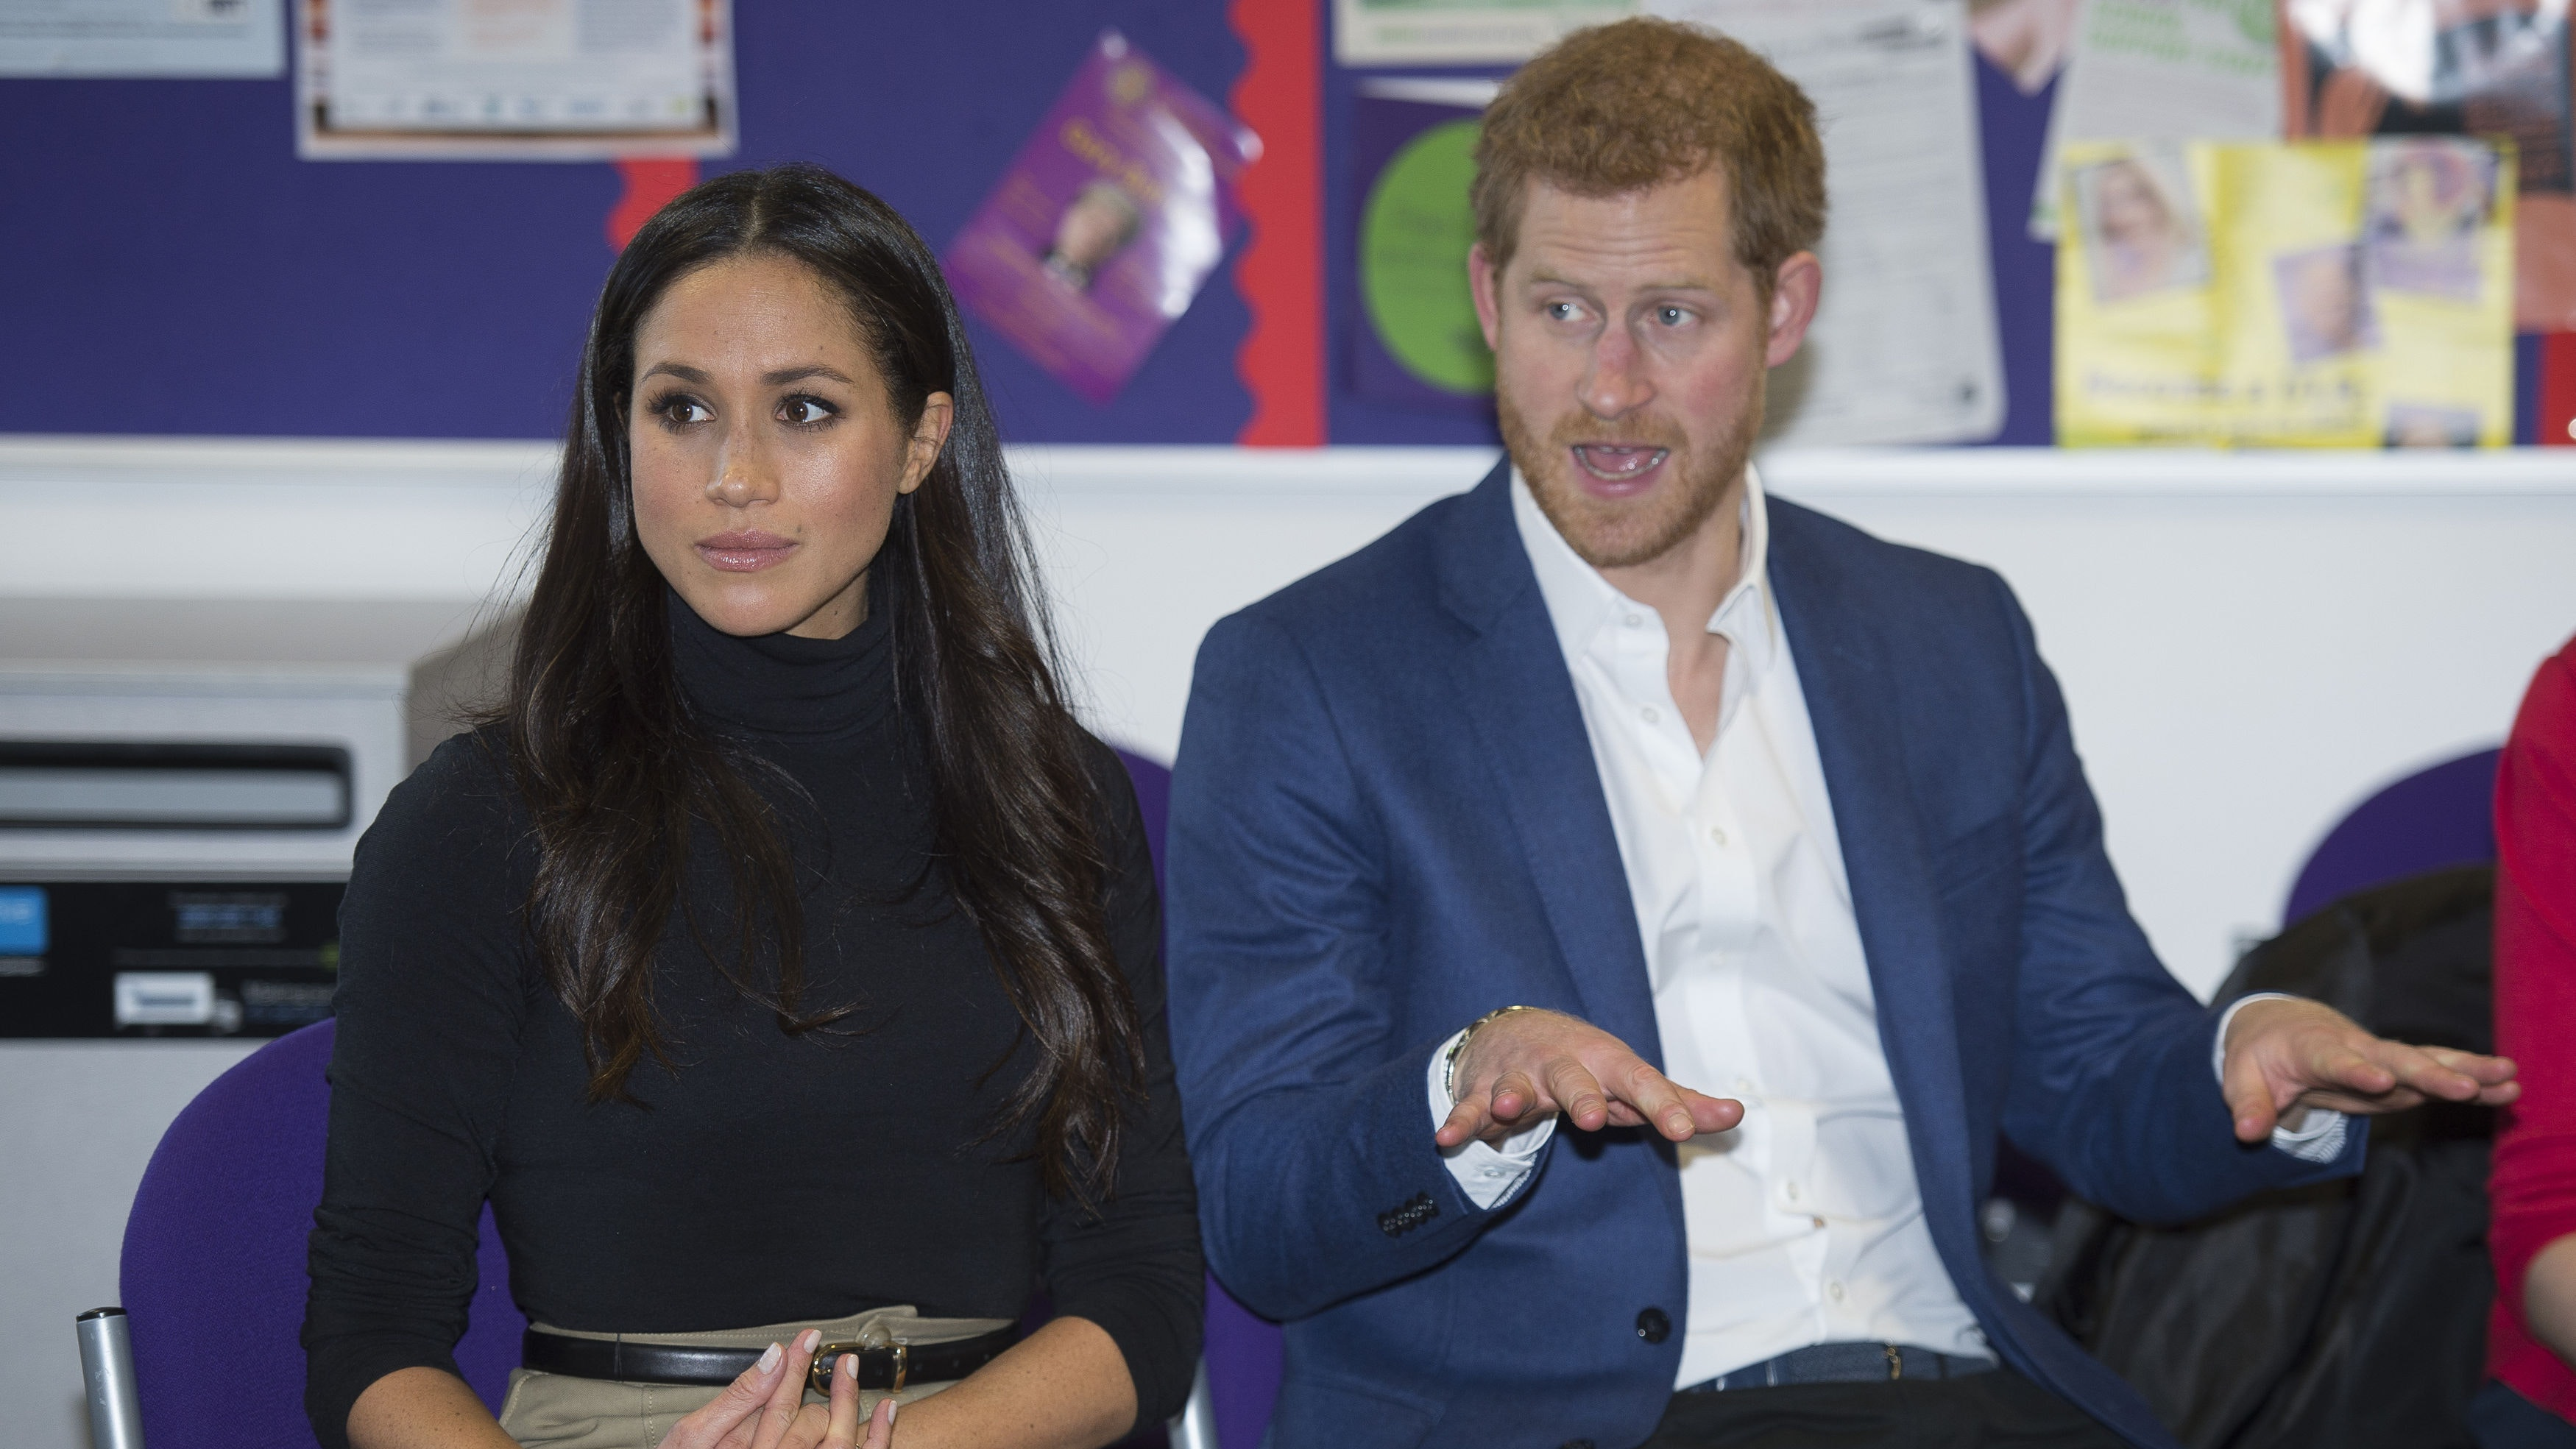 meghan et harry avril 2018